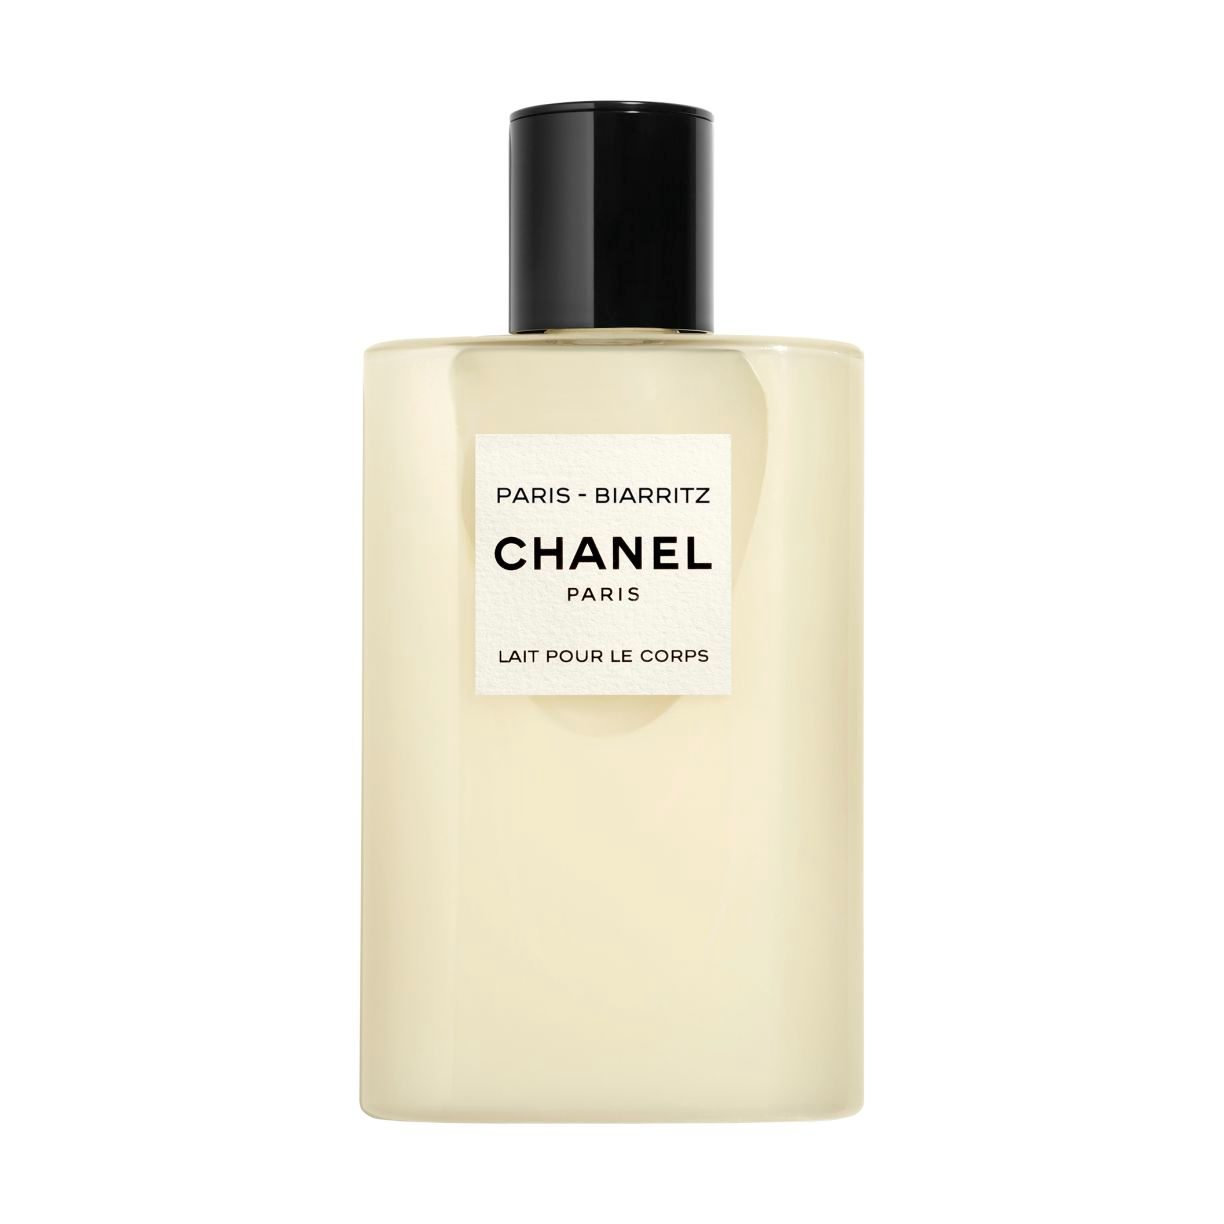 PARIS - BIARRITZ LES EAUX DE CHANEL - BODY LOTION 200ml